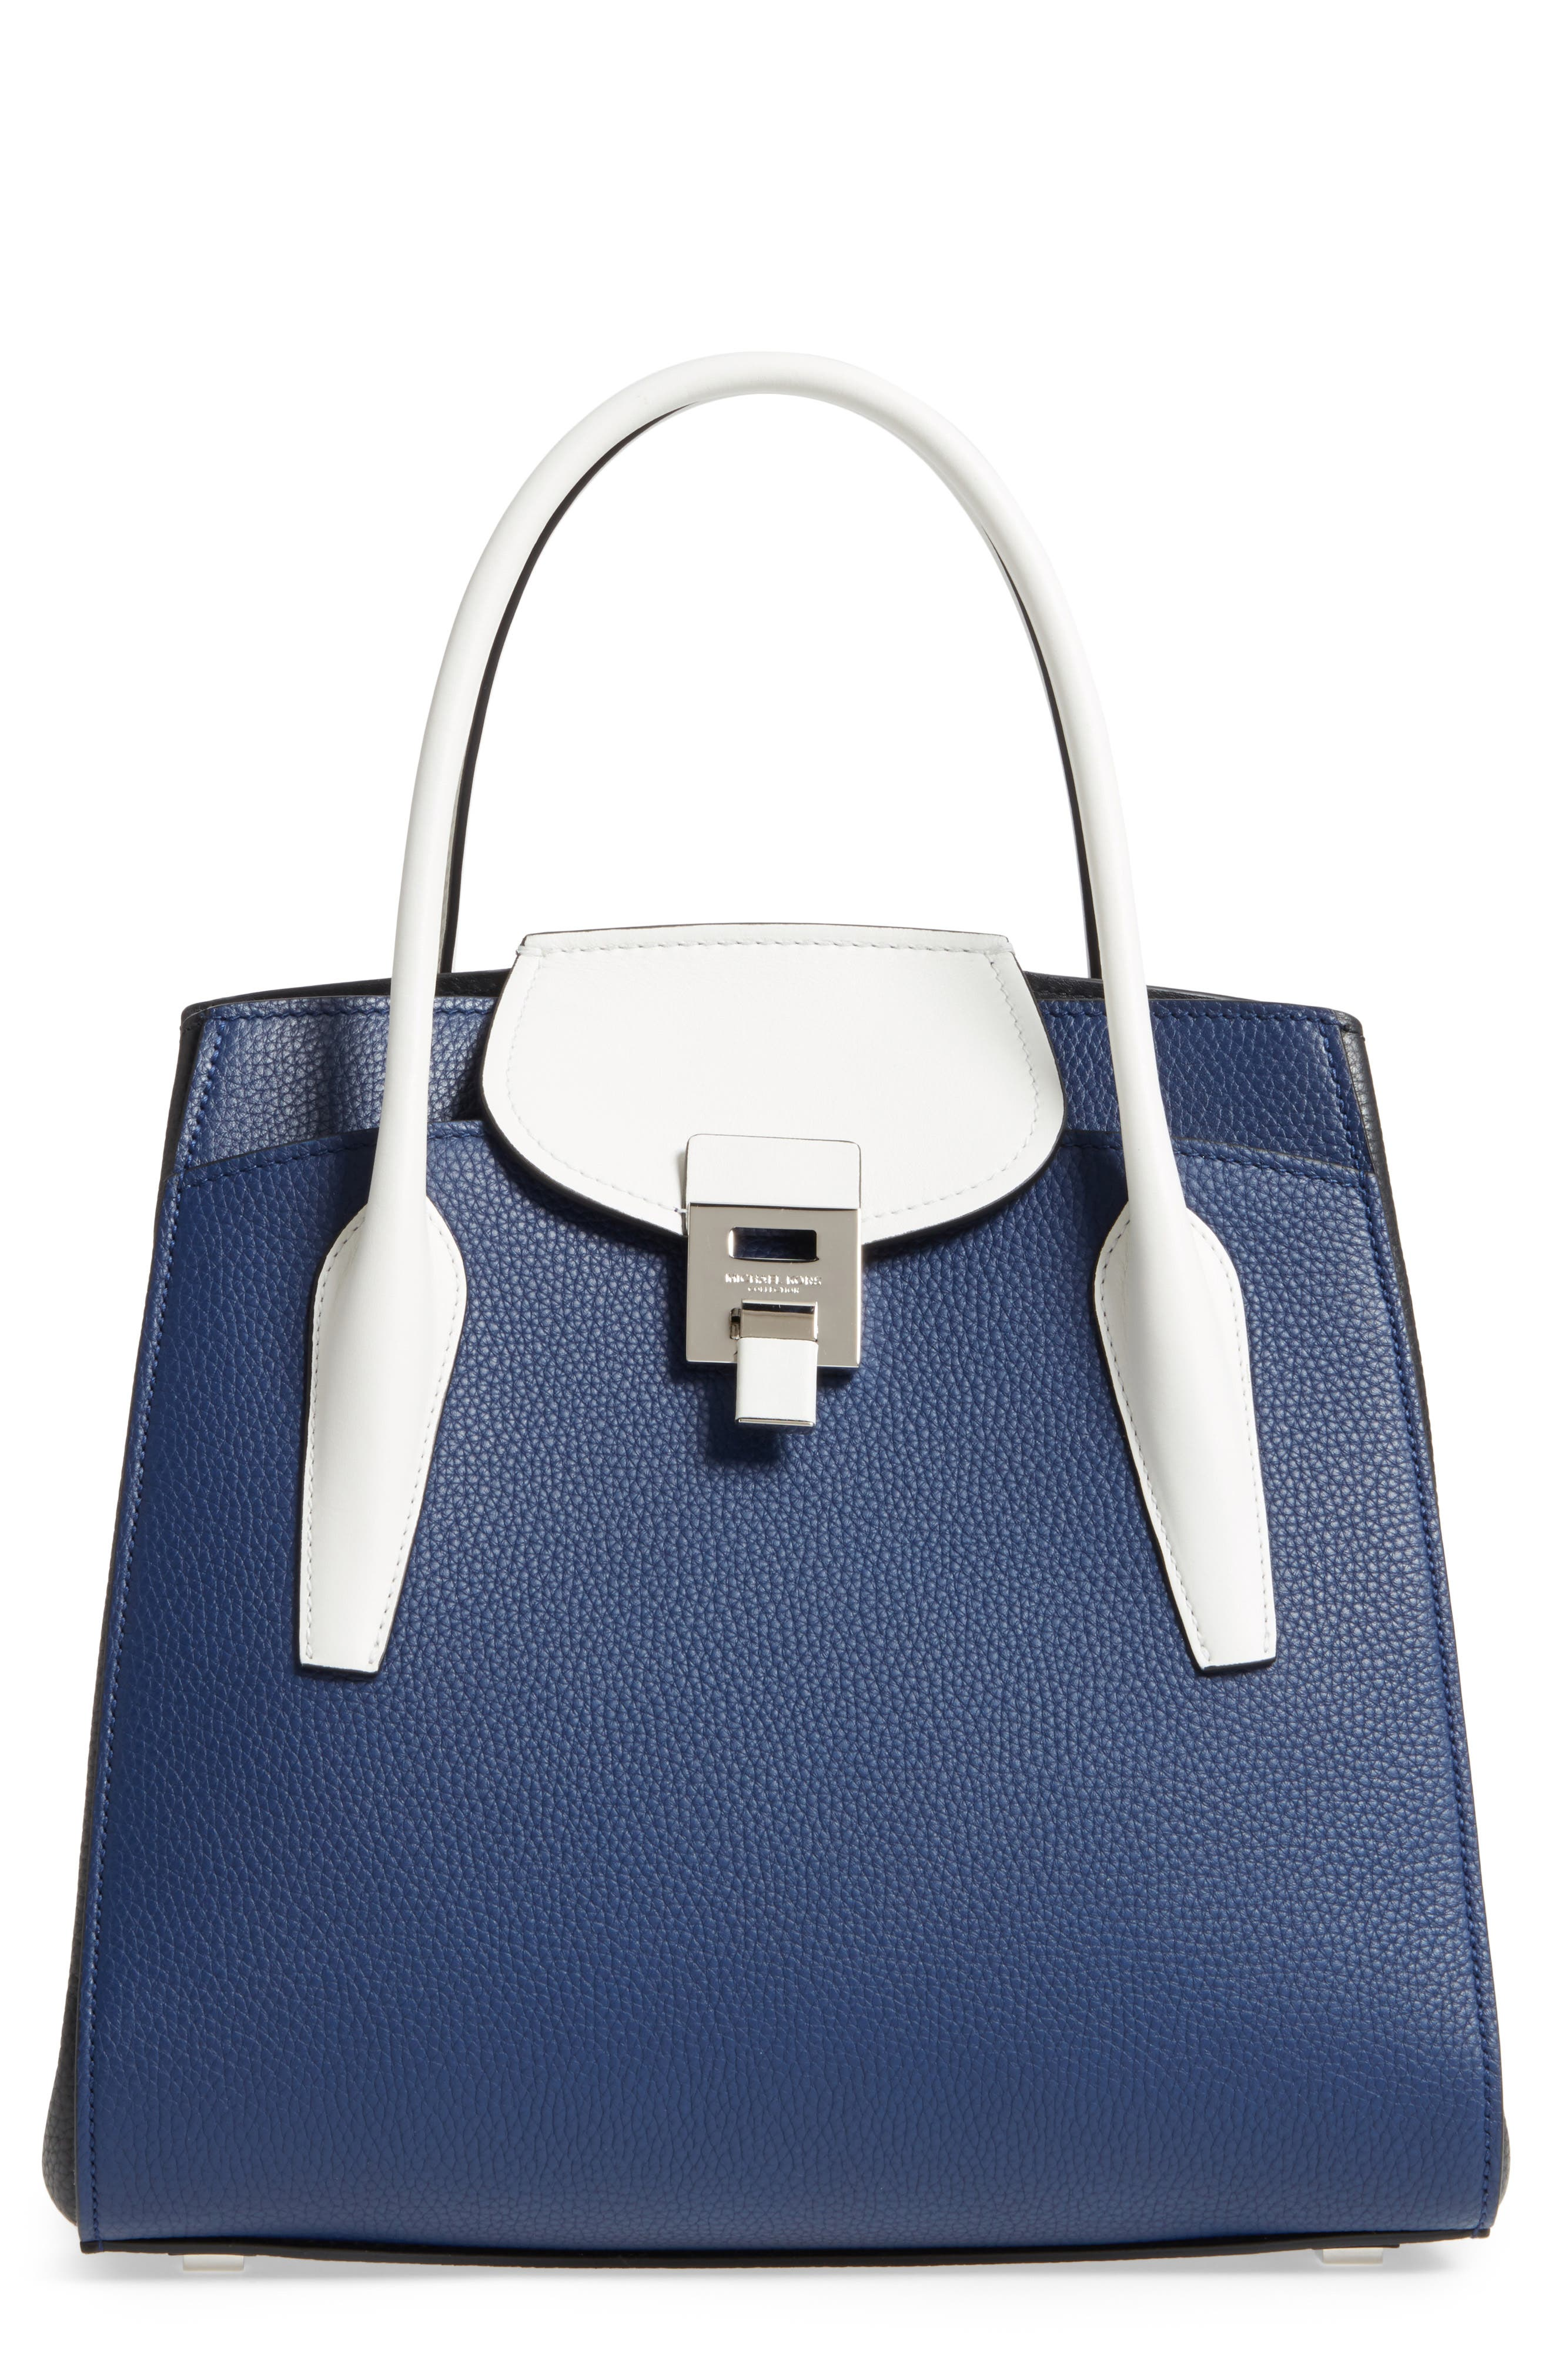 Main Image - Michael Kors Large Bancroft Leather Satchel